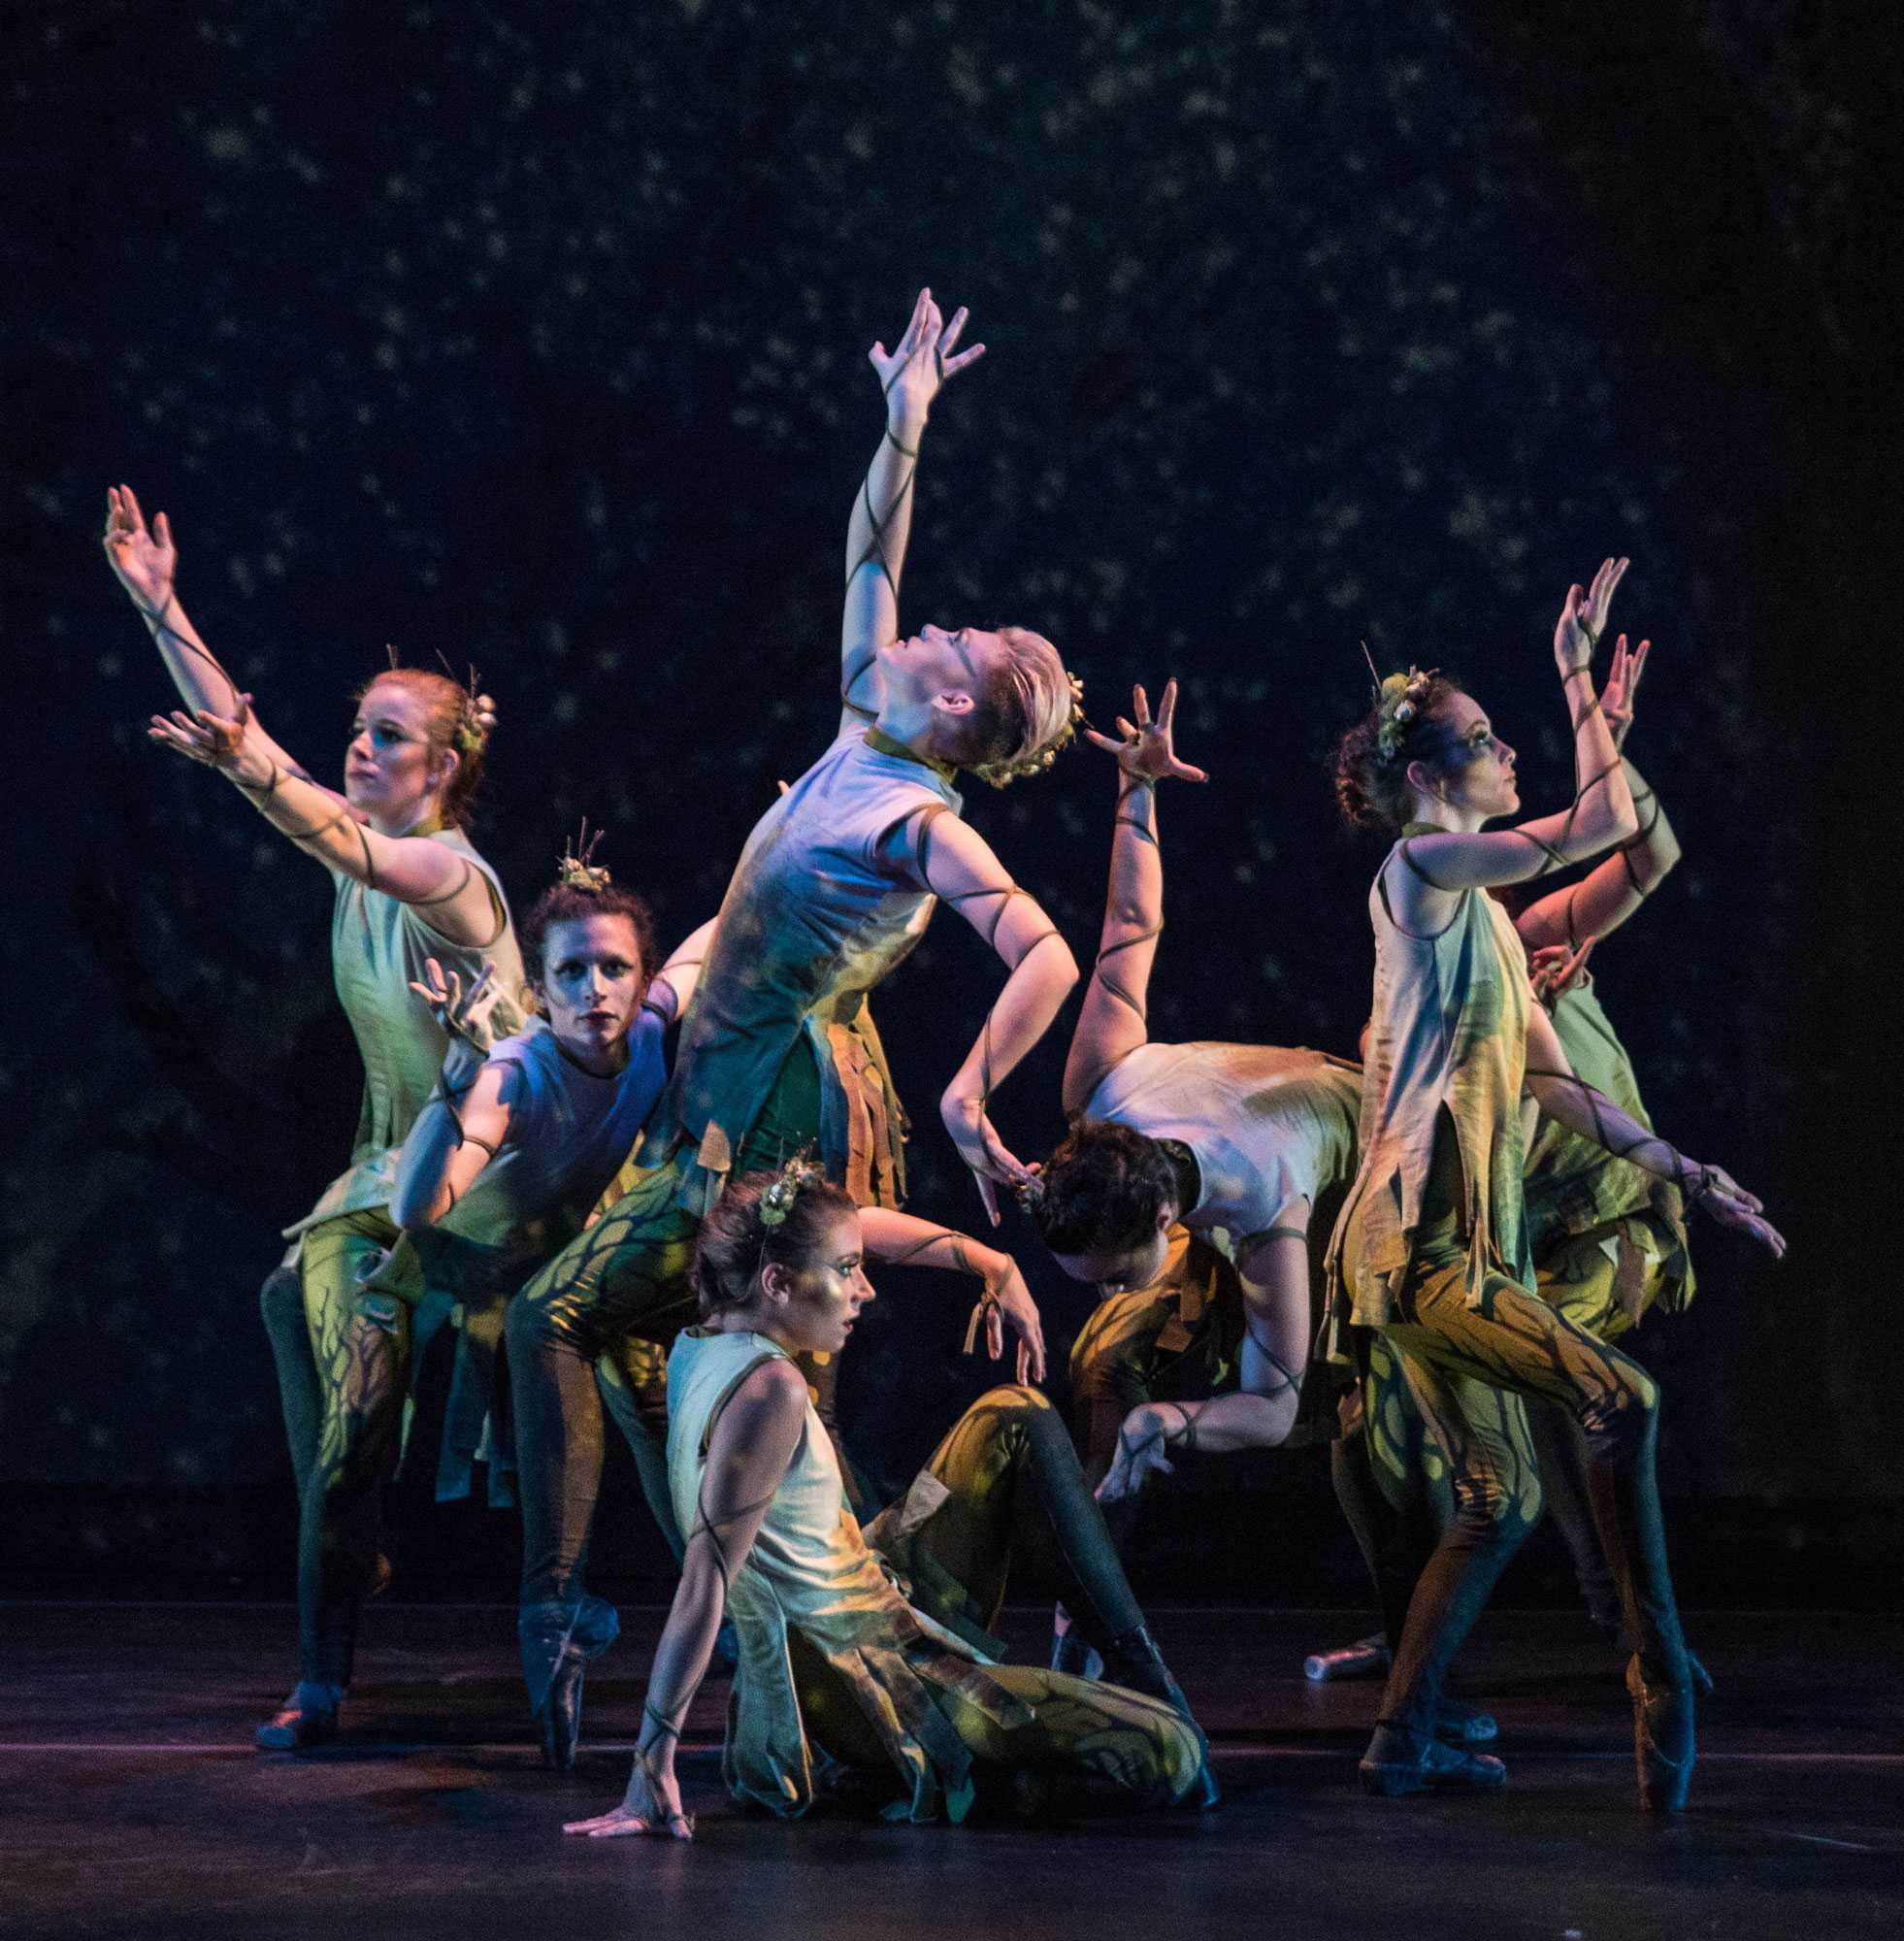 %22UnderStory%22+is+the+title+of+an+original+work+choreographed+in+spring+2018+by+Regina+Gulick%2C+senior+lecturer+in+dance+studies+at+Appalachian+State+University.+Her+cast+of+student+dancers+included%2C+from+left+to+right%2C+Ashley+Holliday%2C+Amanda+Mason%2C+Lexi+Ovenden%2C+Lyndsey+Porter%2C+Elise+Staub%2C+Bronwyn+Weismiller%2C+and+Annie+Young.